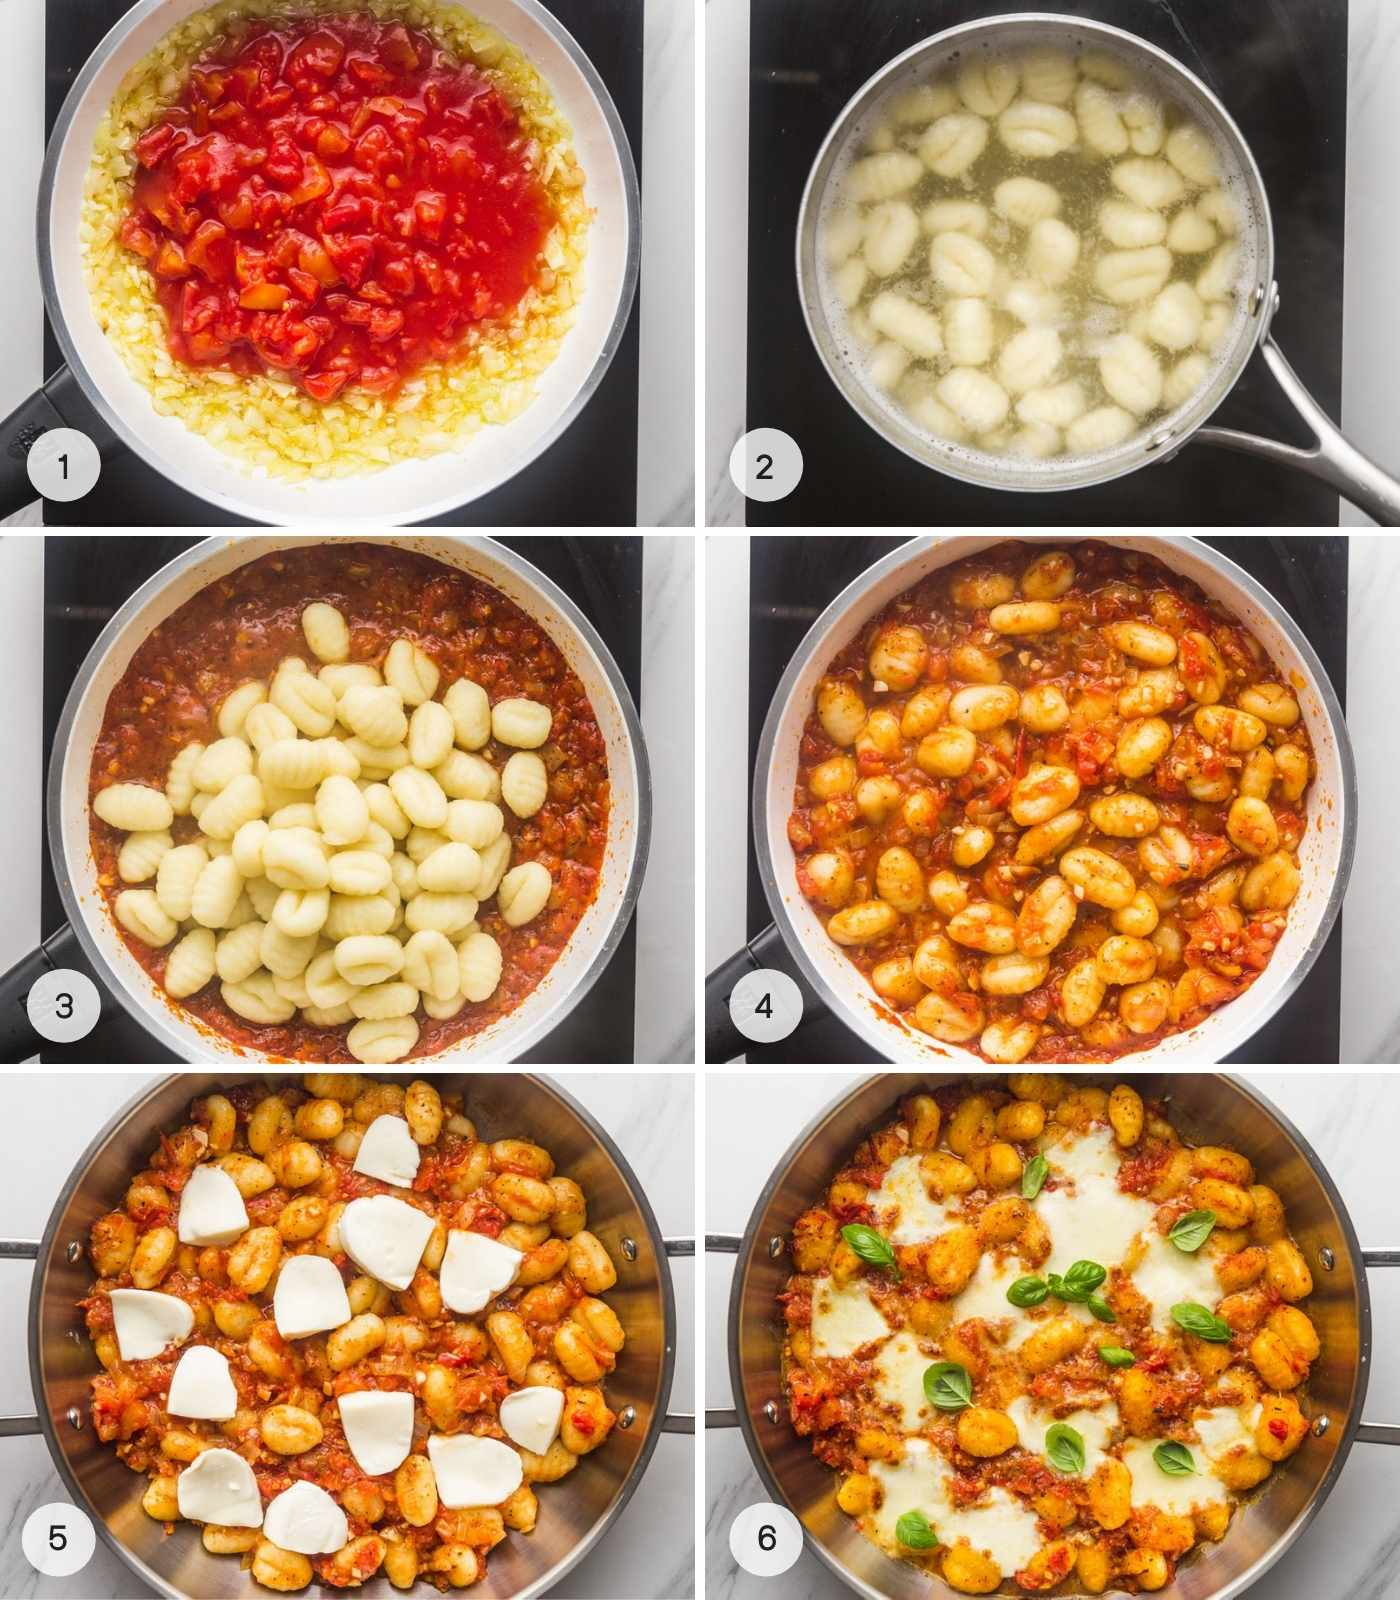 Steps how to make gnocchi sauce al pomodoro, a collage with 5 images